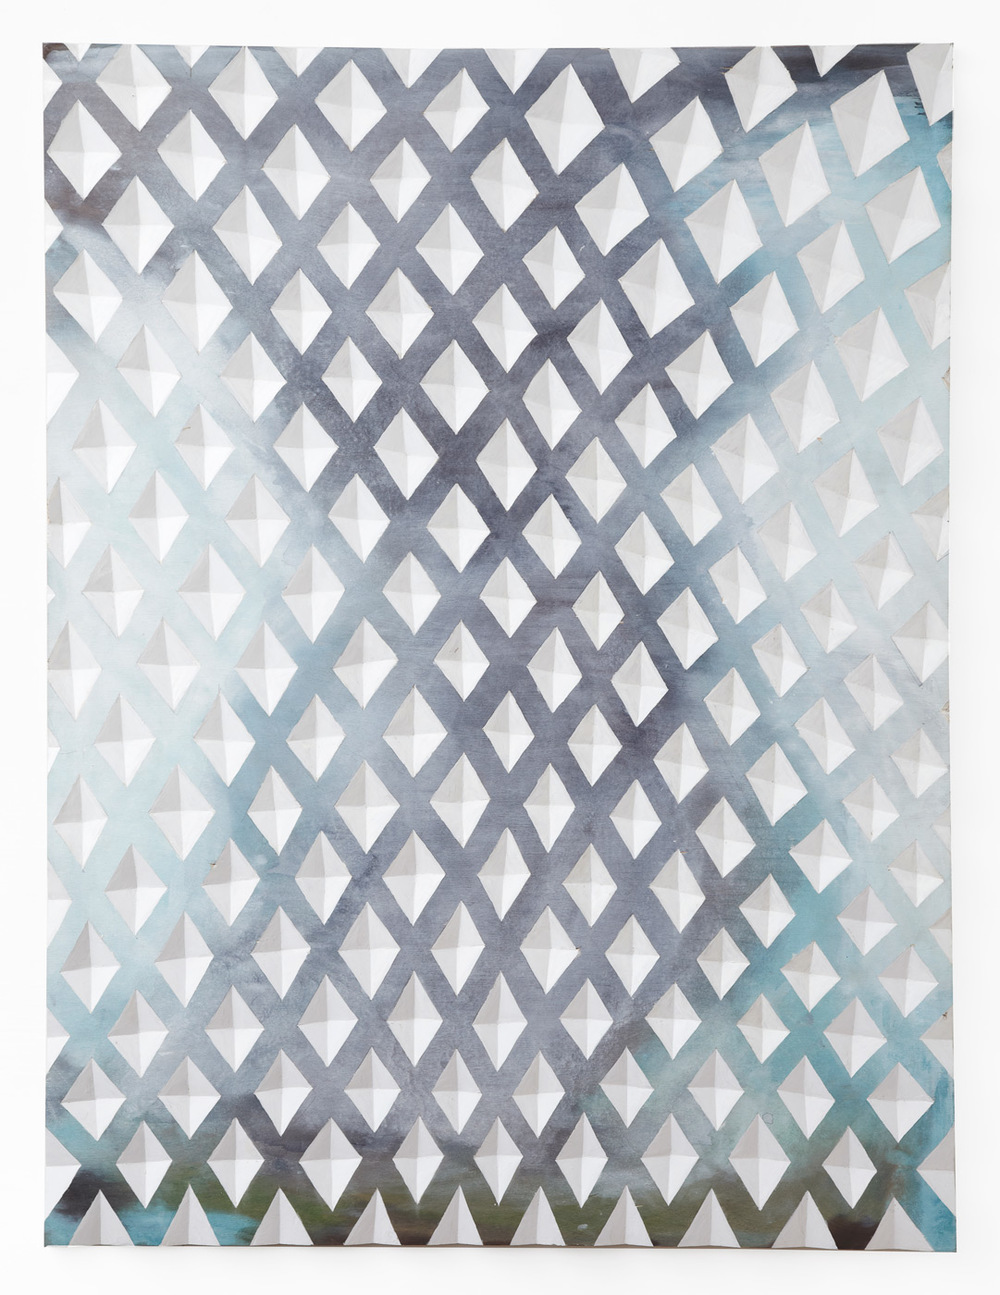 Gerard Mullin, Untitled, 2013, watercolor, wood dye, and acrylic on plywood, 48 x 36 inches